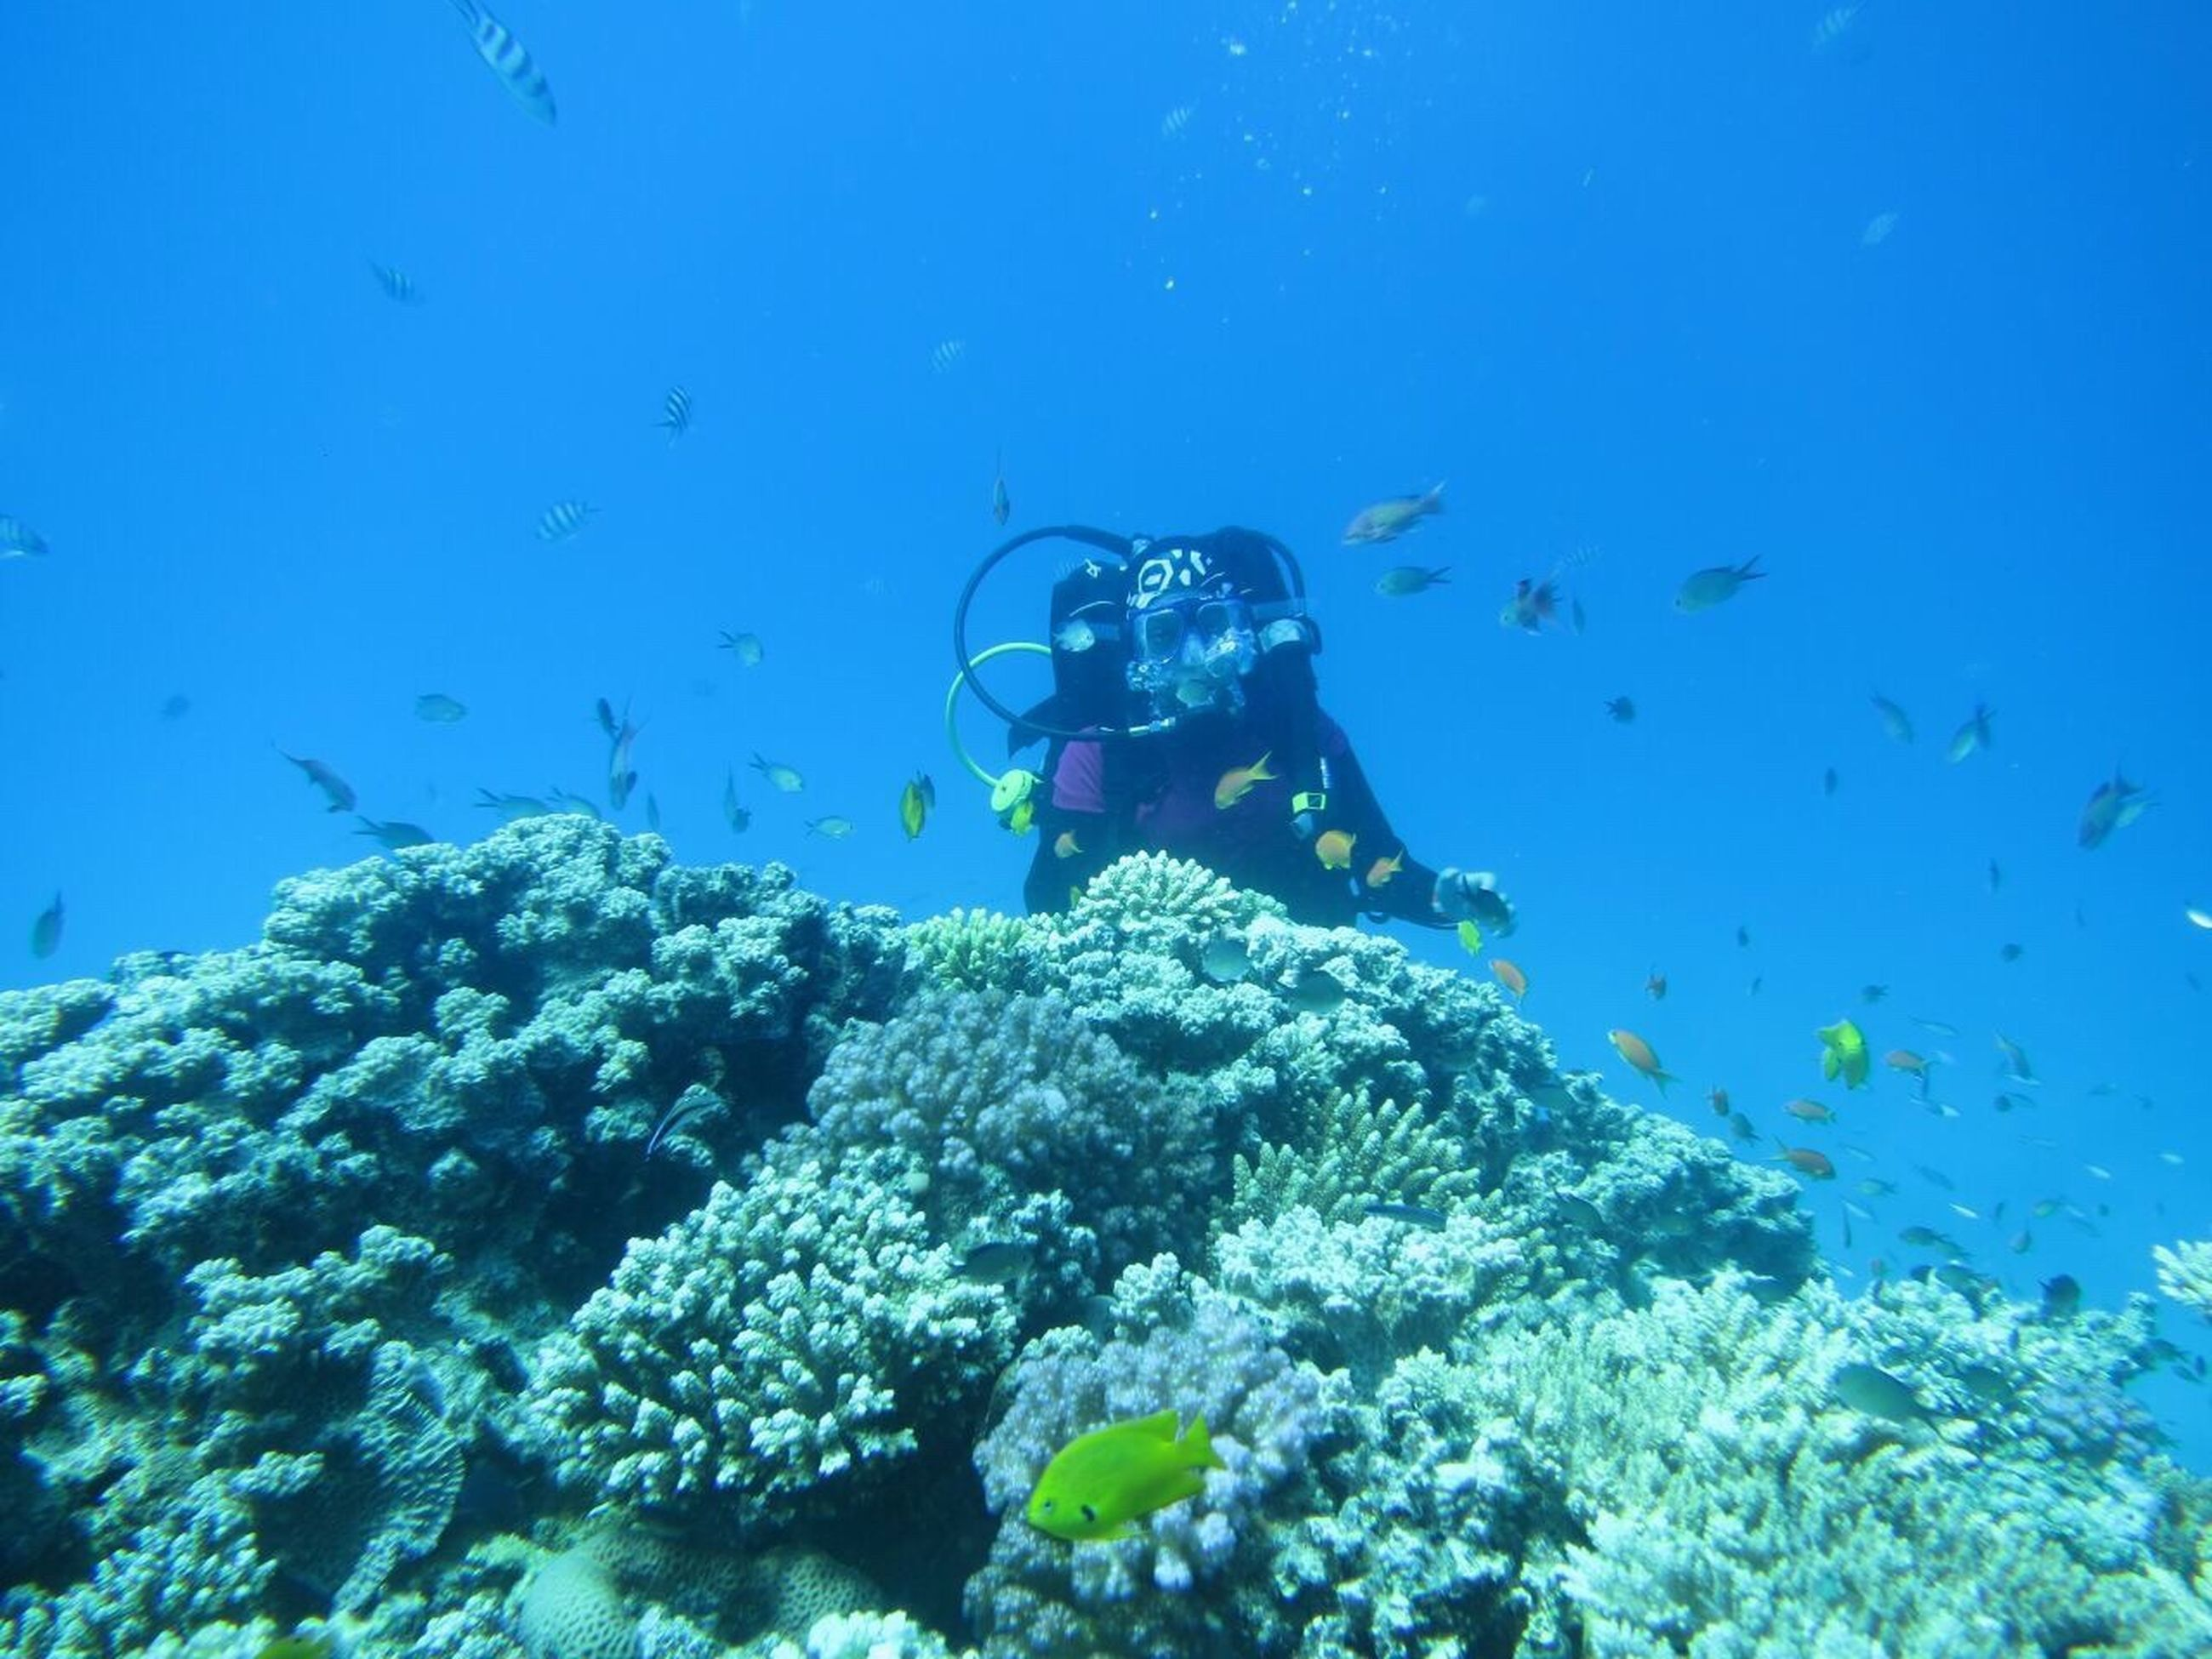 Man scuba diving in sea by coral reef